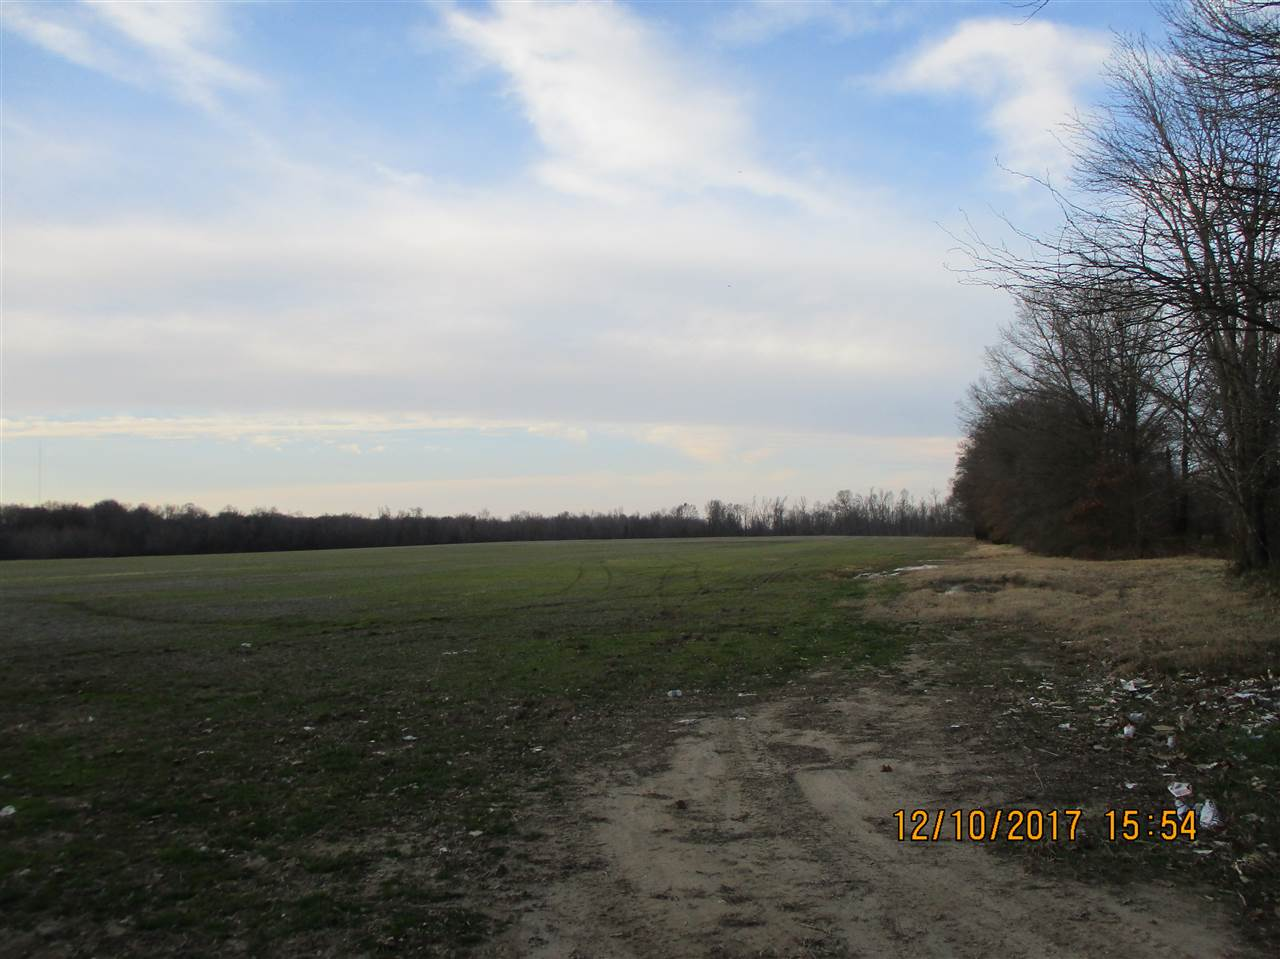 000 Arlan Reason Rd,Alamo,Tennessee 38001,Lots/land,000 Arlan Reason Rd,180799